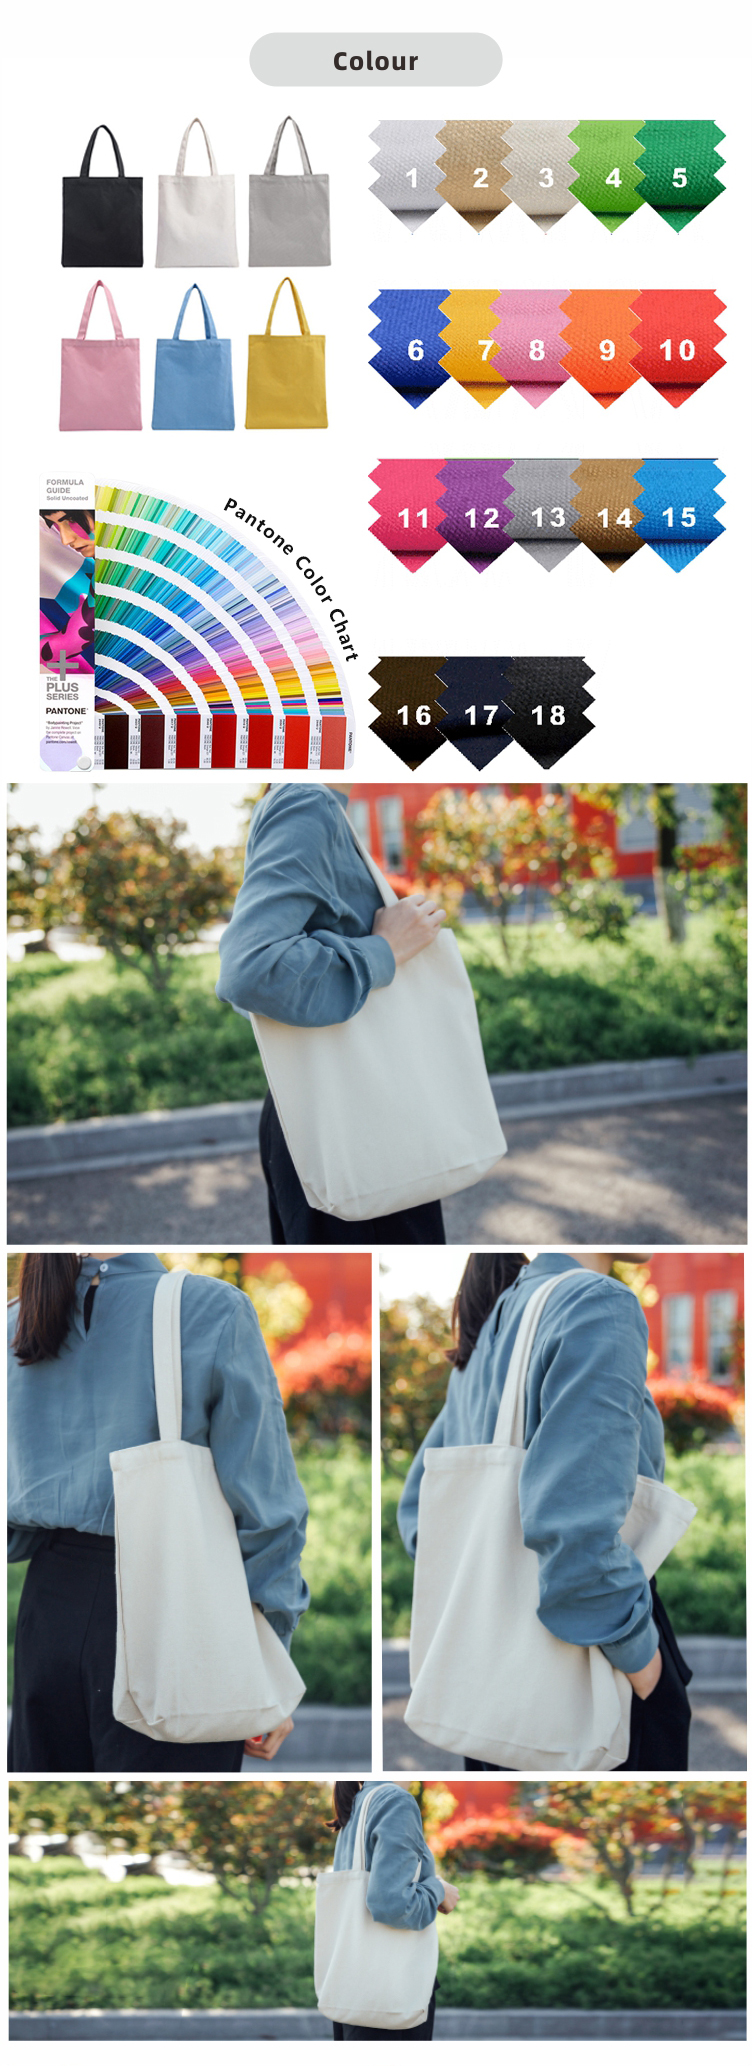 Cotton tote bag 3.jpg